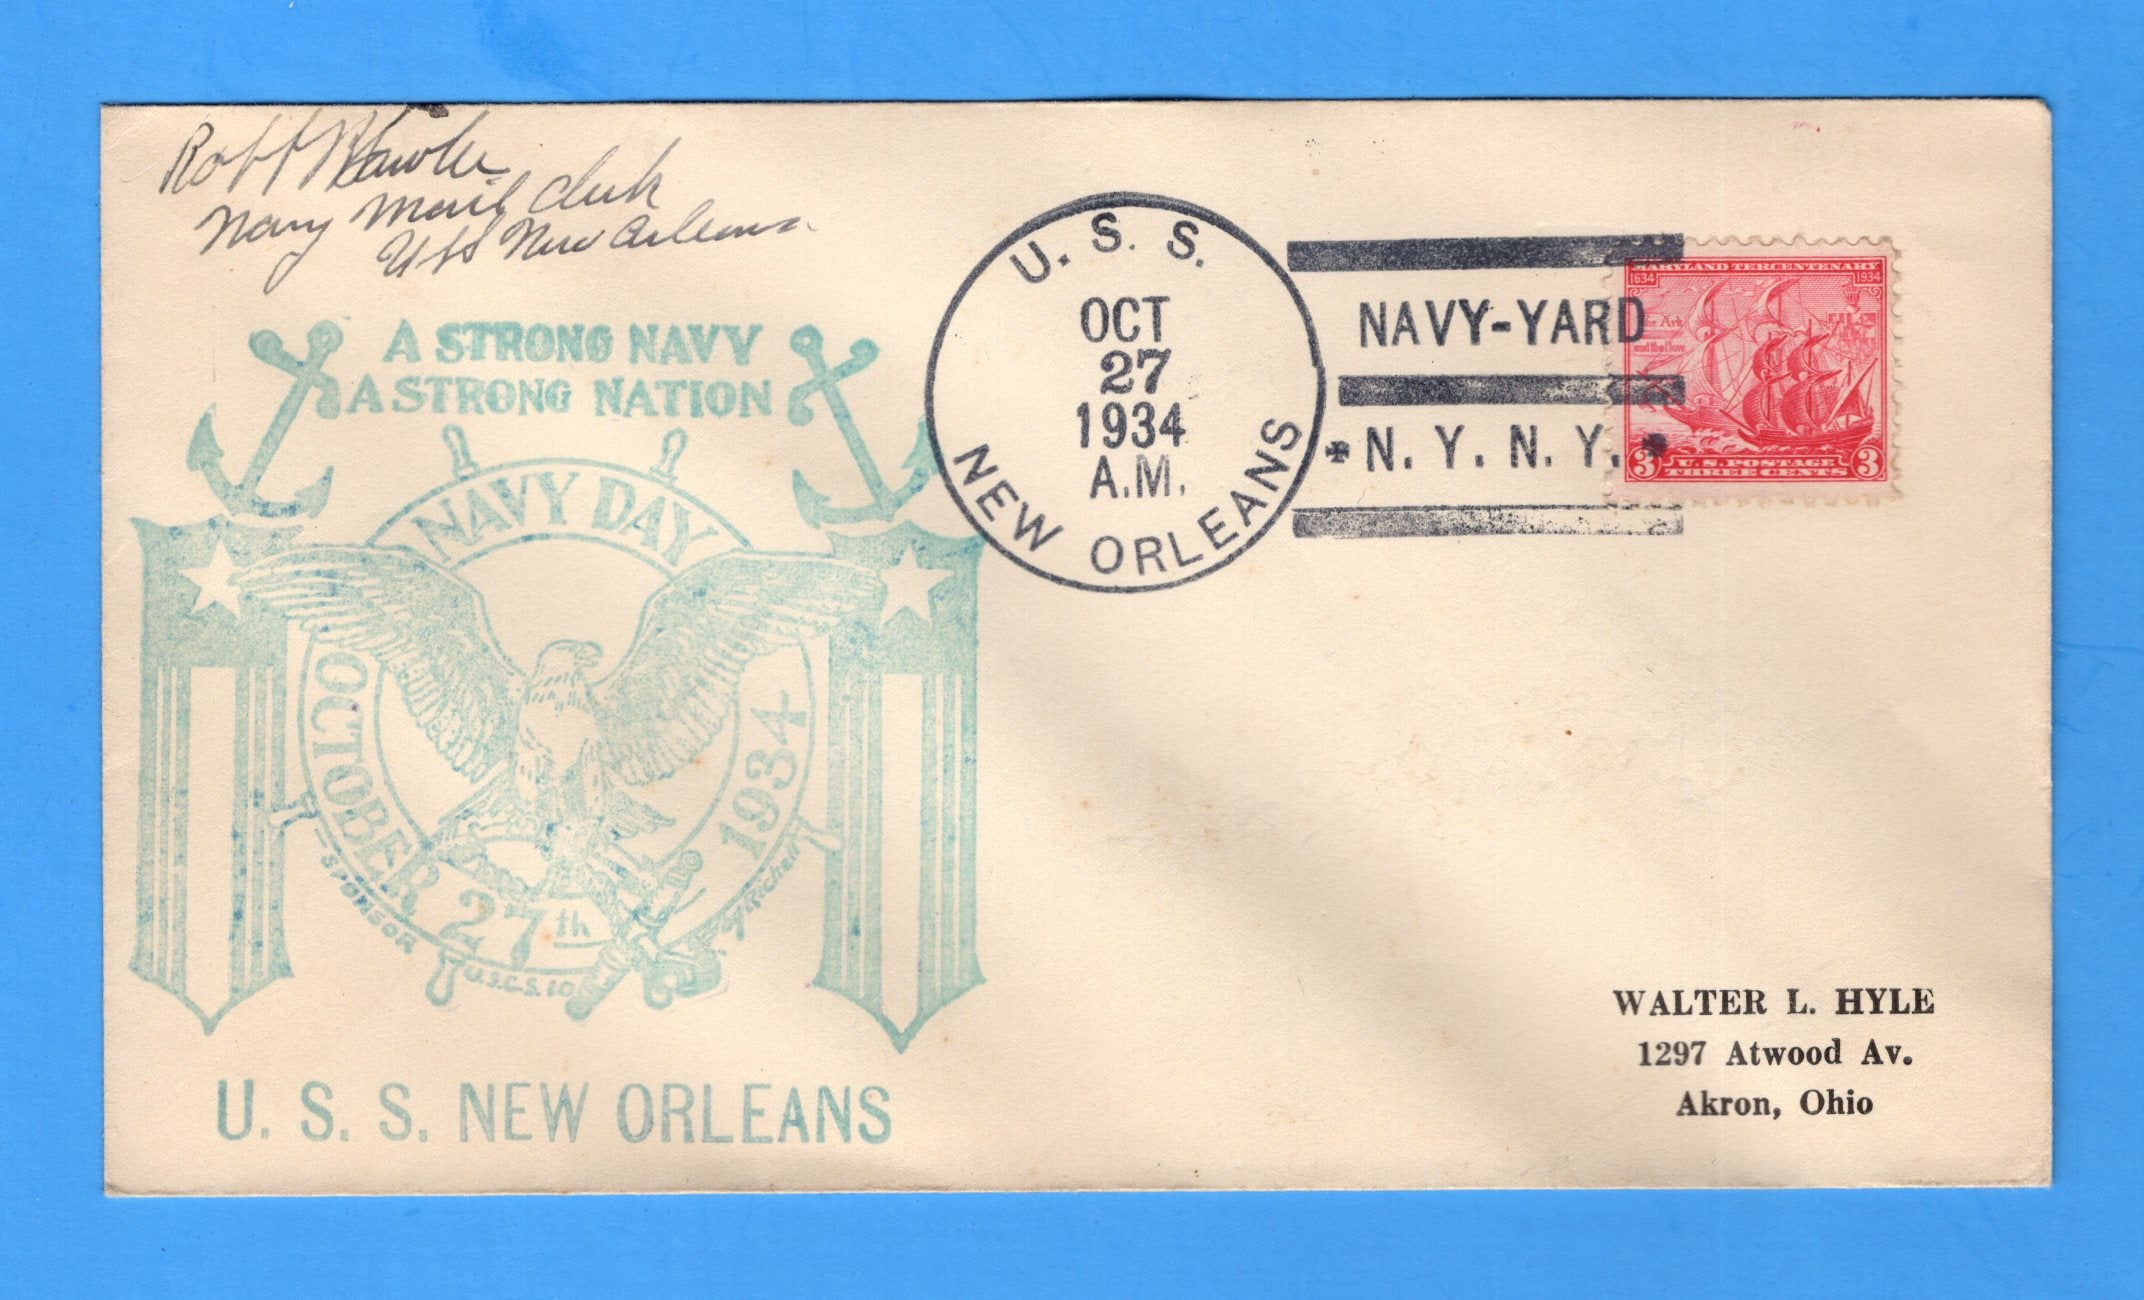 USS New Orleans CA-32 Navy Day October 27, 1934